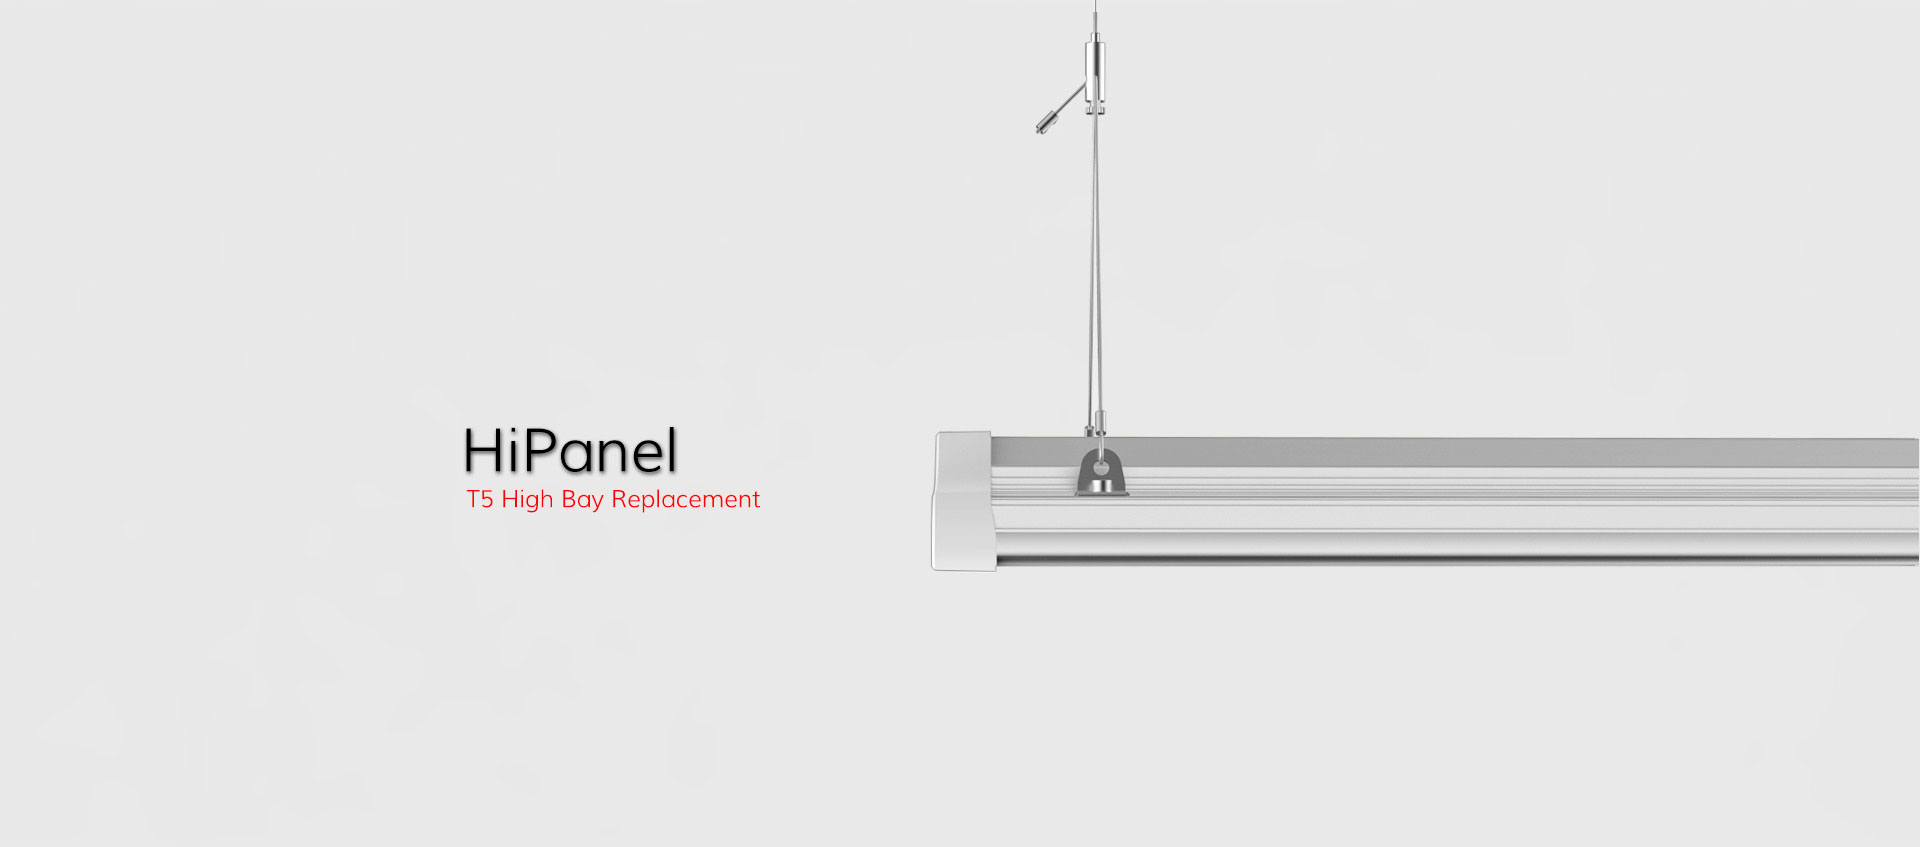 HiPanel T5 High Bay Replacement